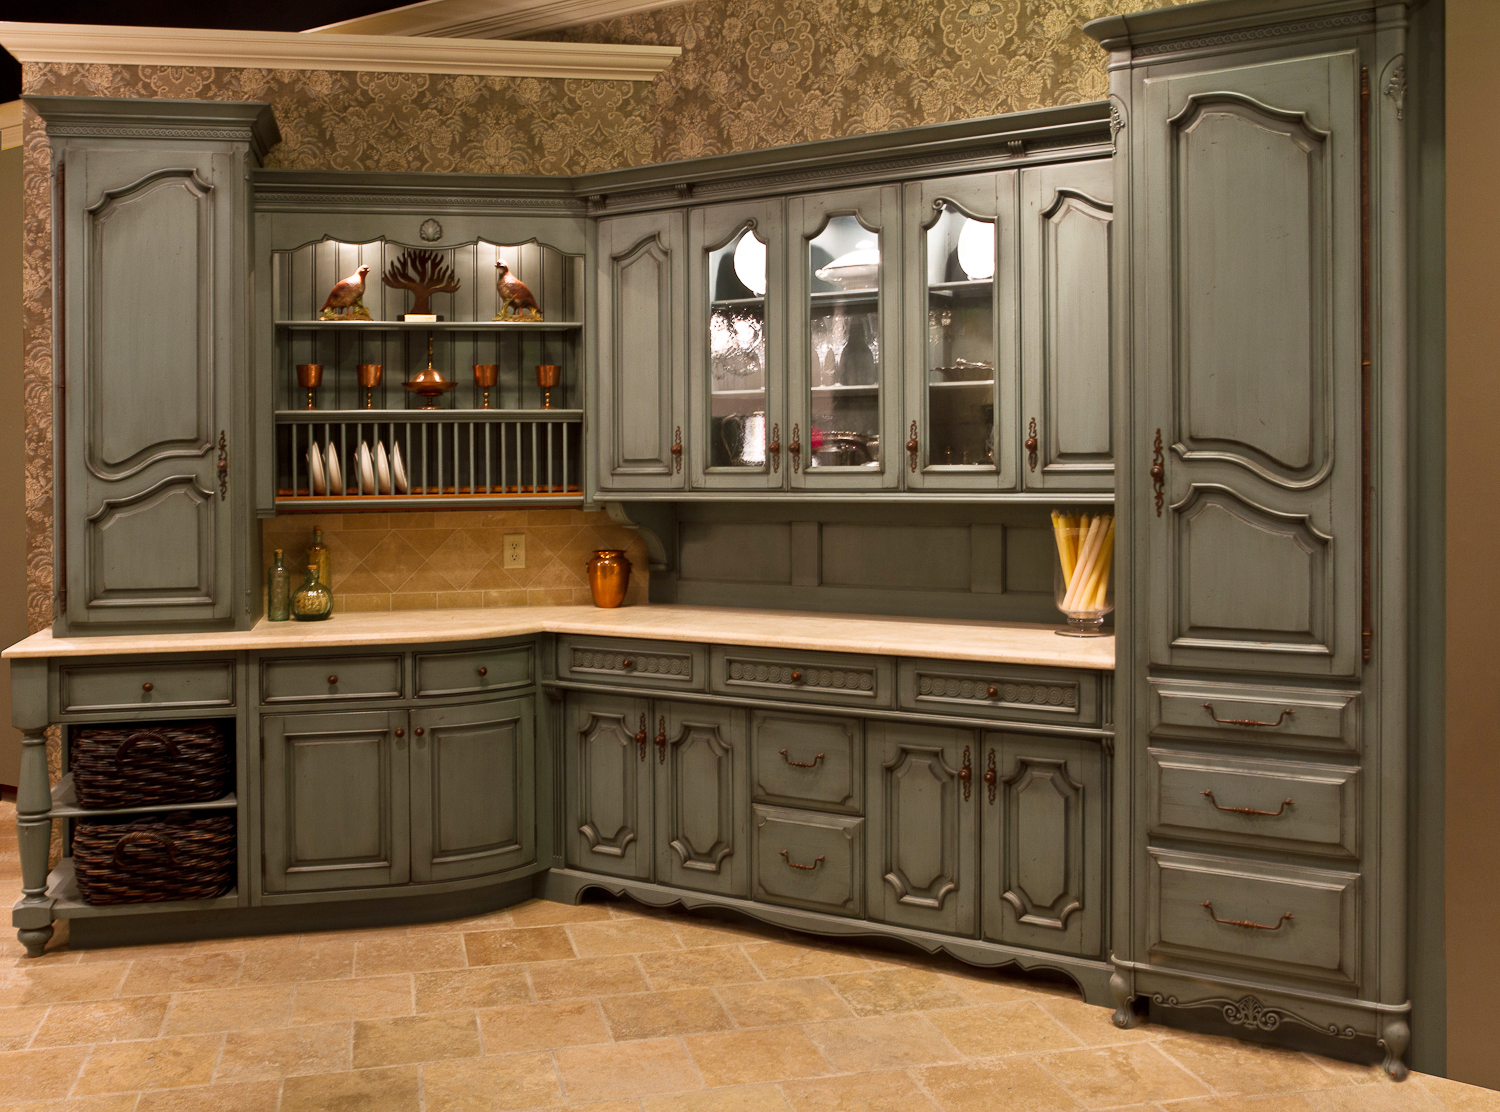 A Matter Of Taste ST LOUIS HOMES LIFESTYLES - Grey wood kitchen doors